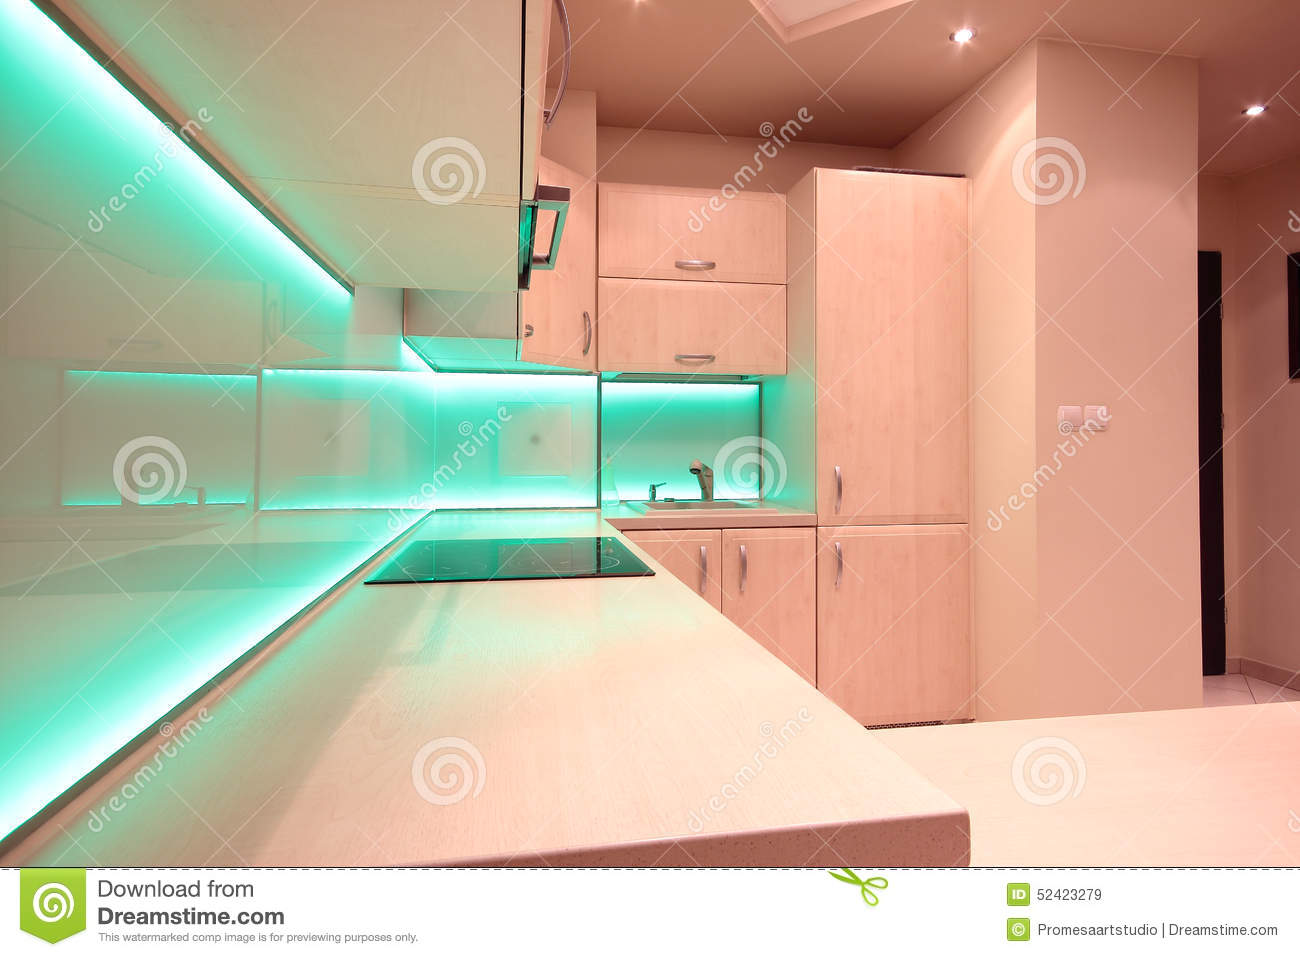 Modern Luxury Kitchen With Green LED Lighting Stock Photo - Image: 52423279